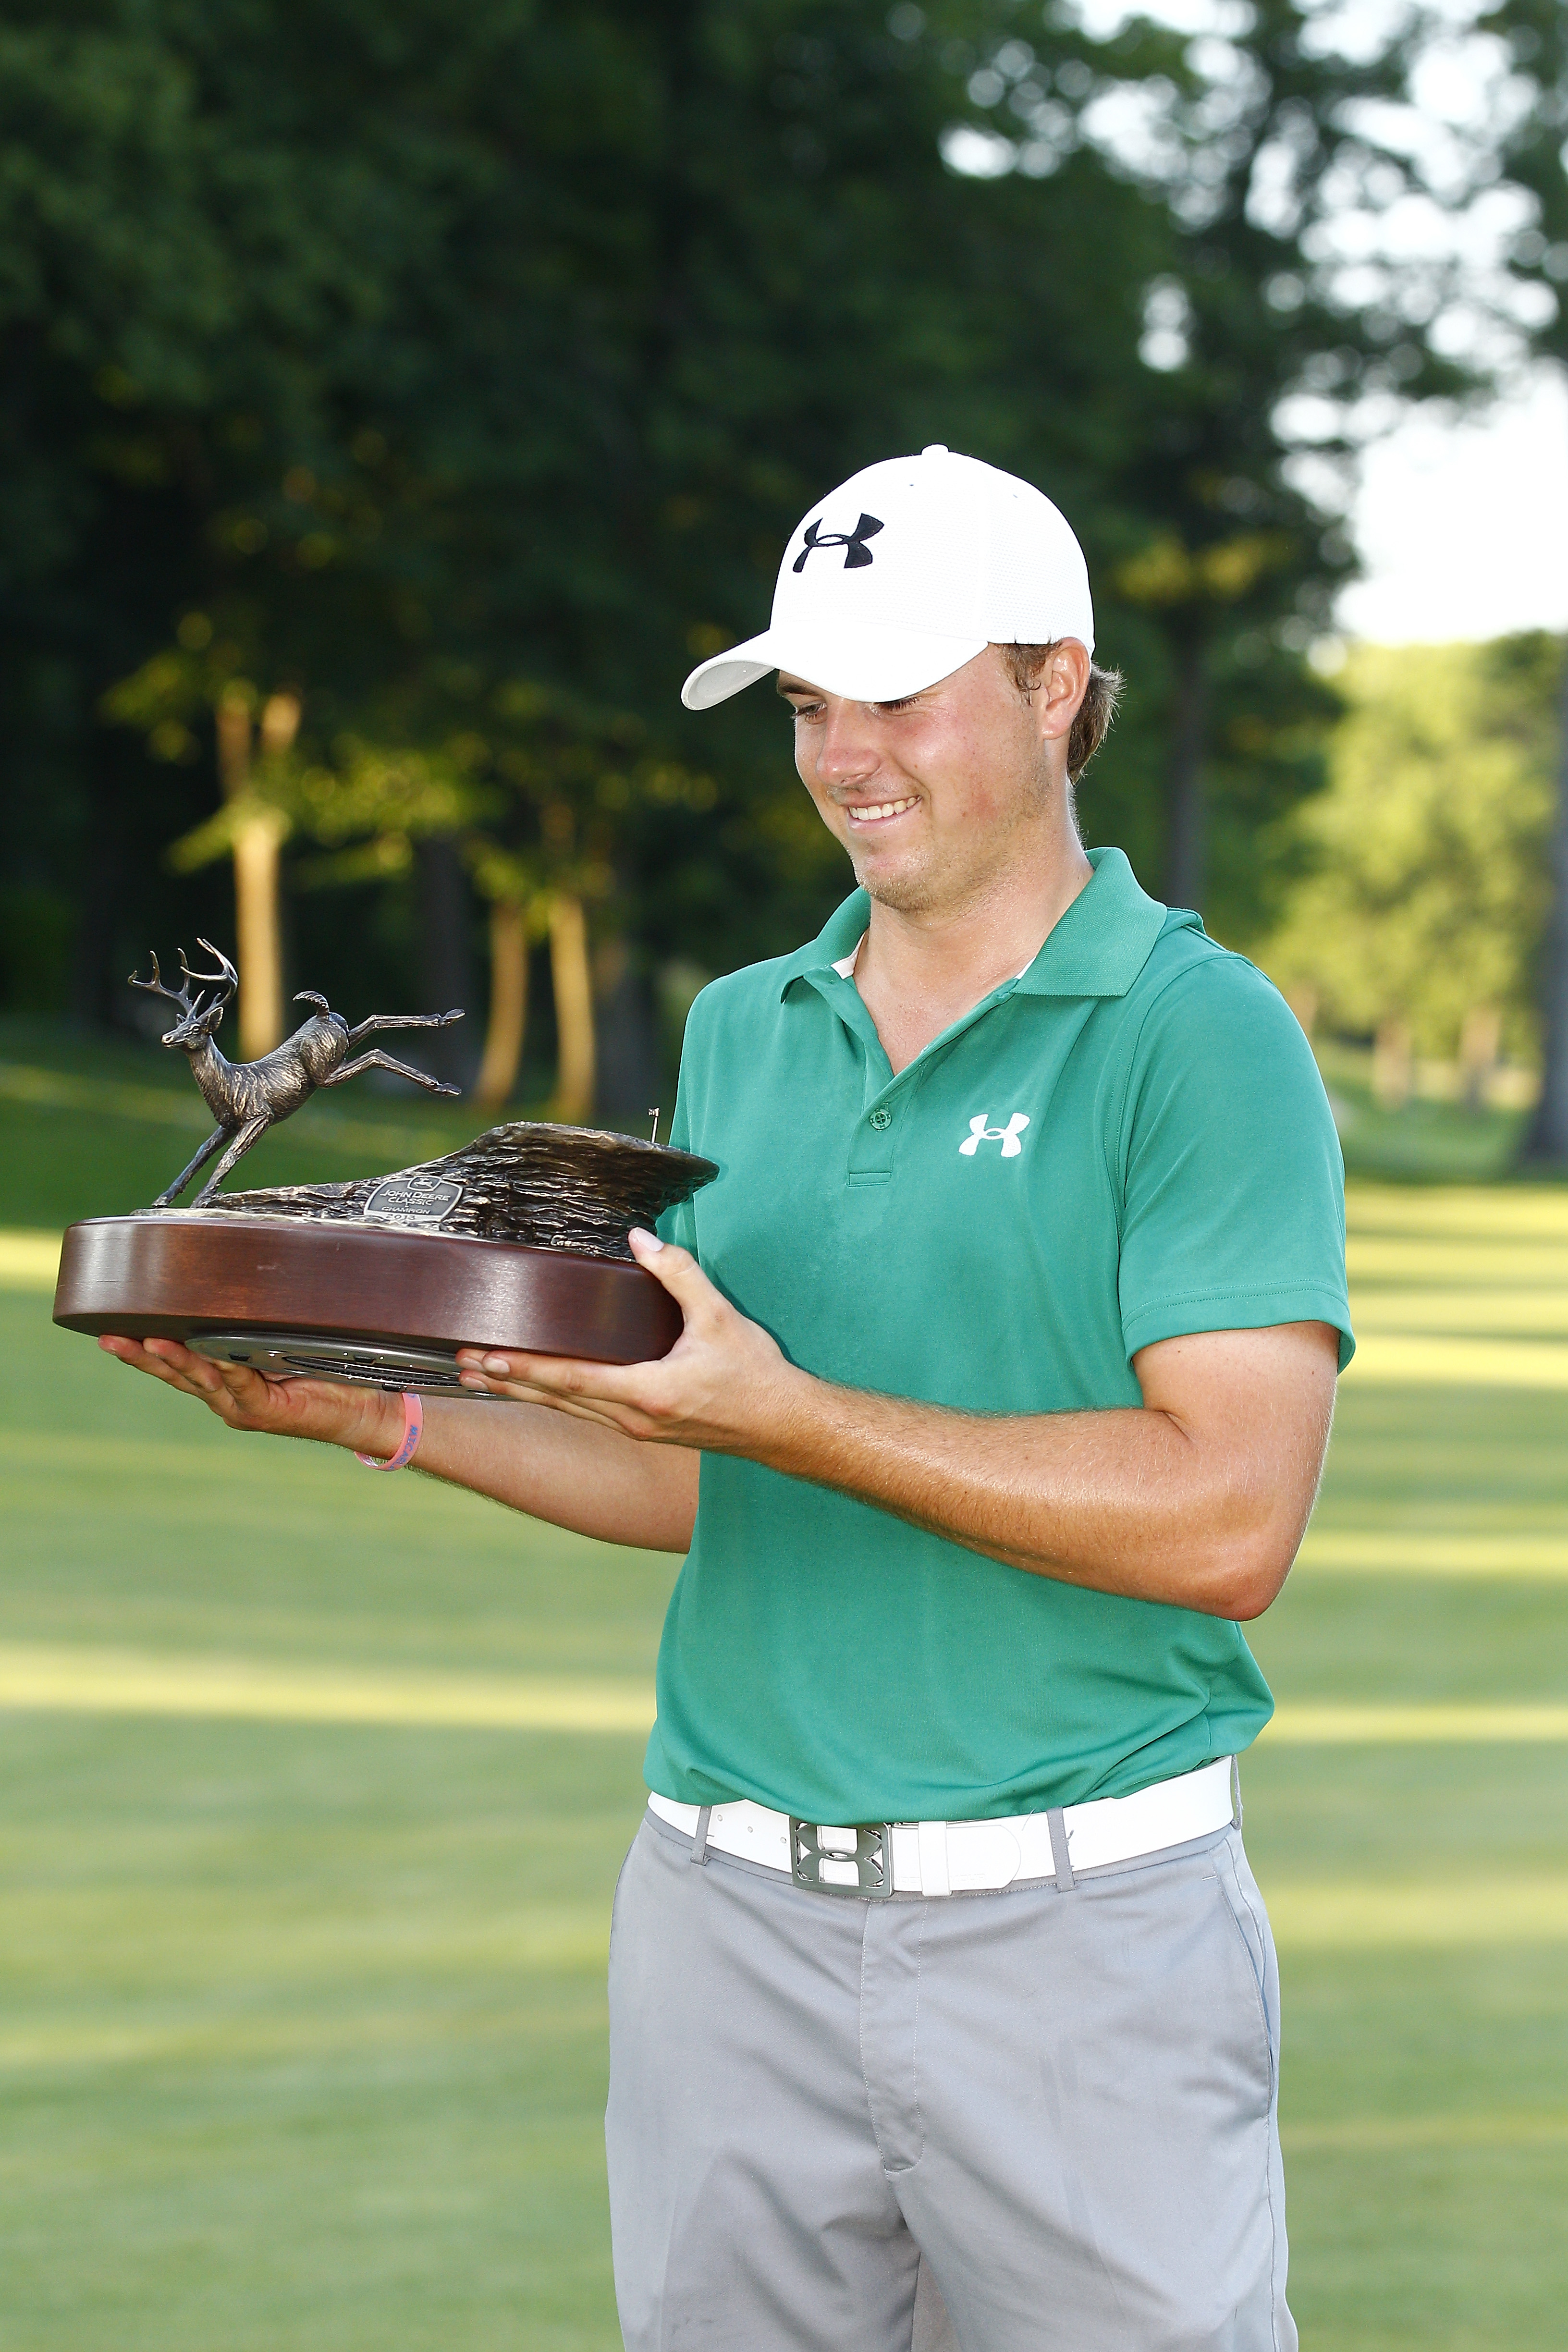 Jordan Spieth at the John Deere Classic